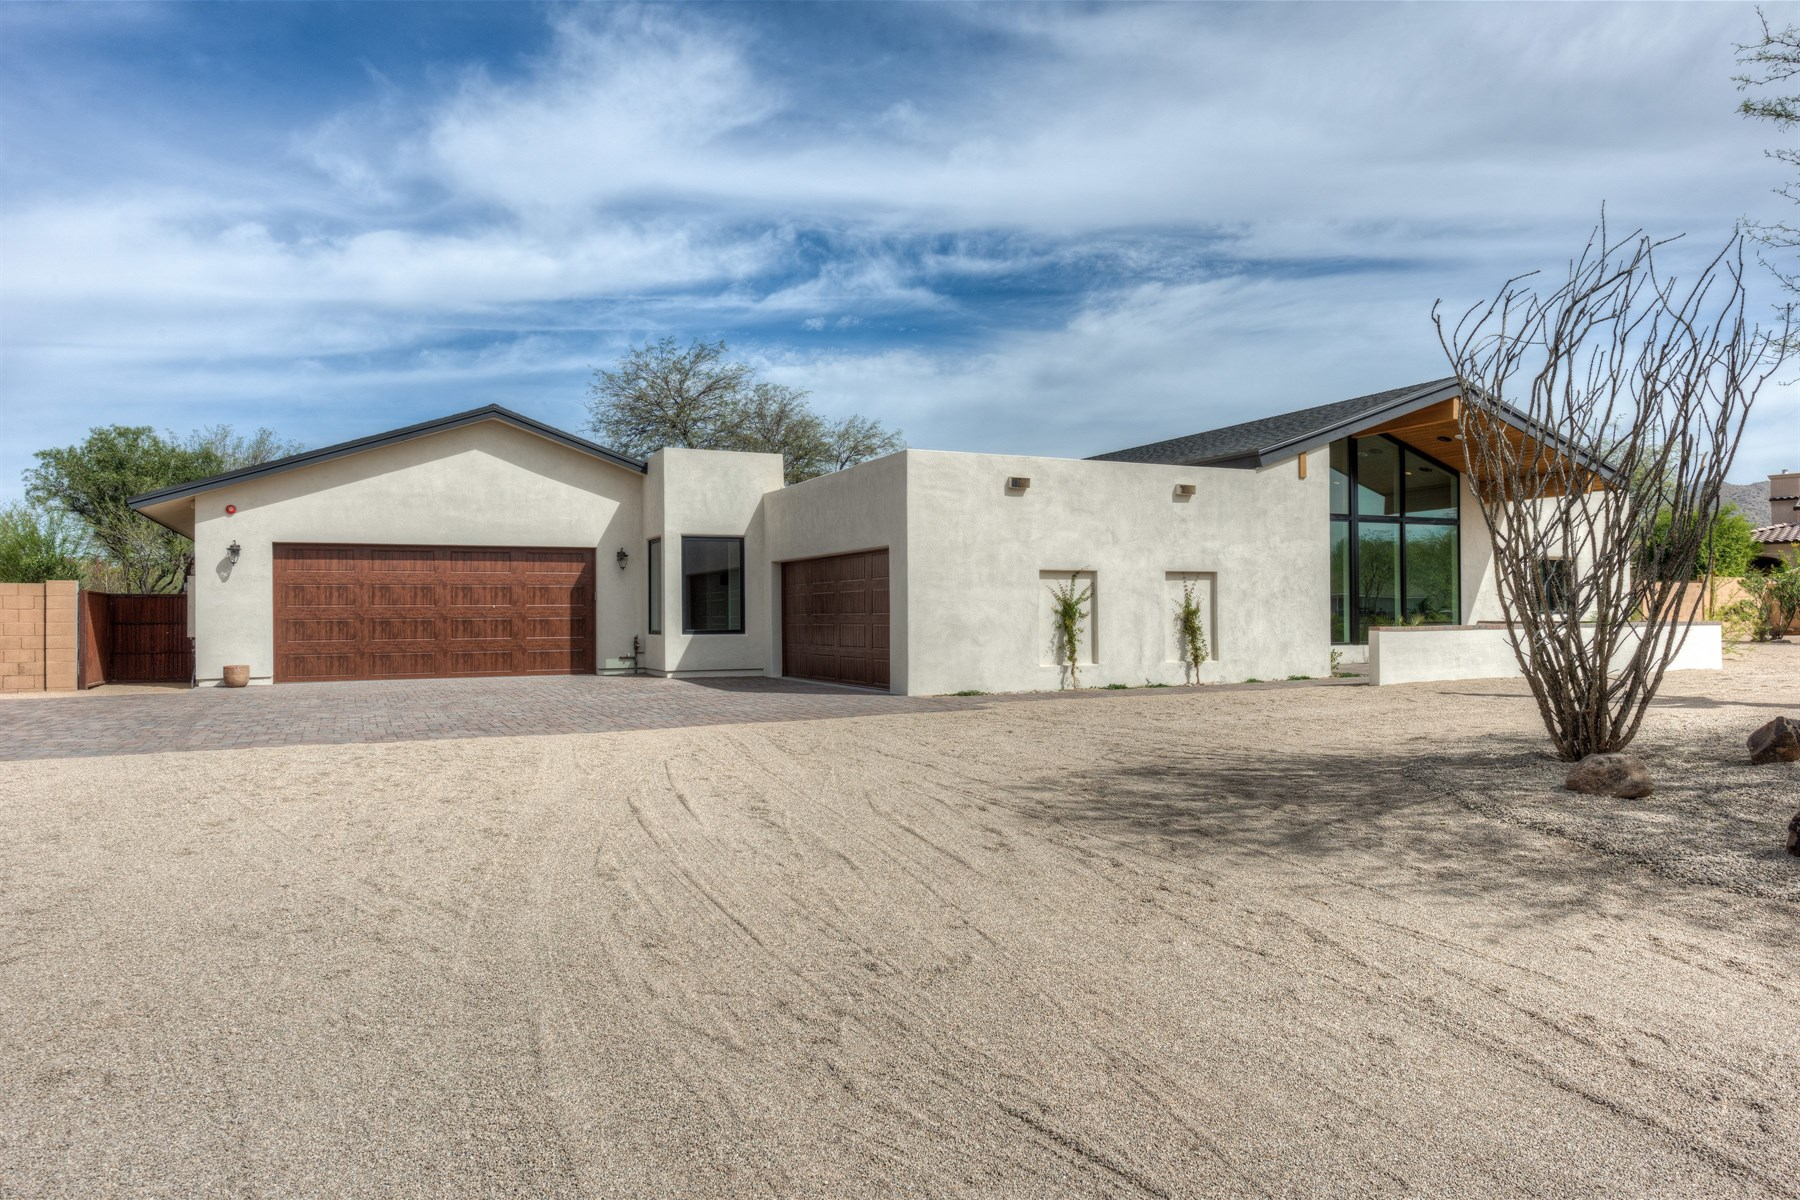 Single Family Home for Sale at Meticulously renovated soft contemporary ranchers retreat 10060 E Paradise Dr Scottsdale, Arizona, 85260 United States